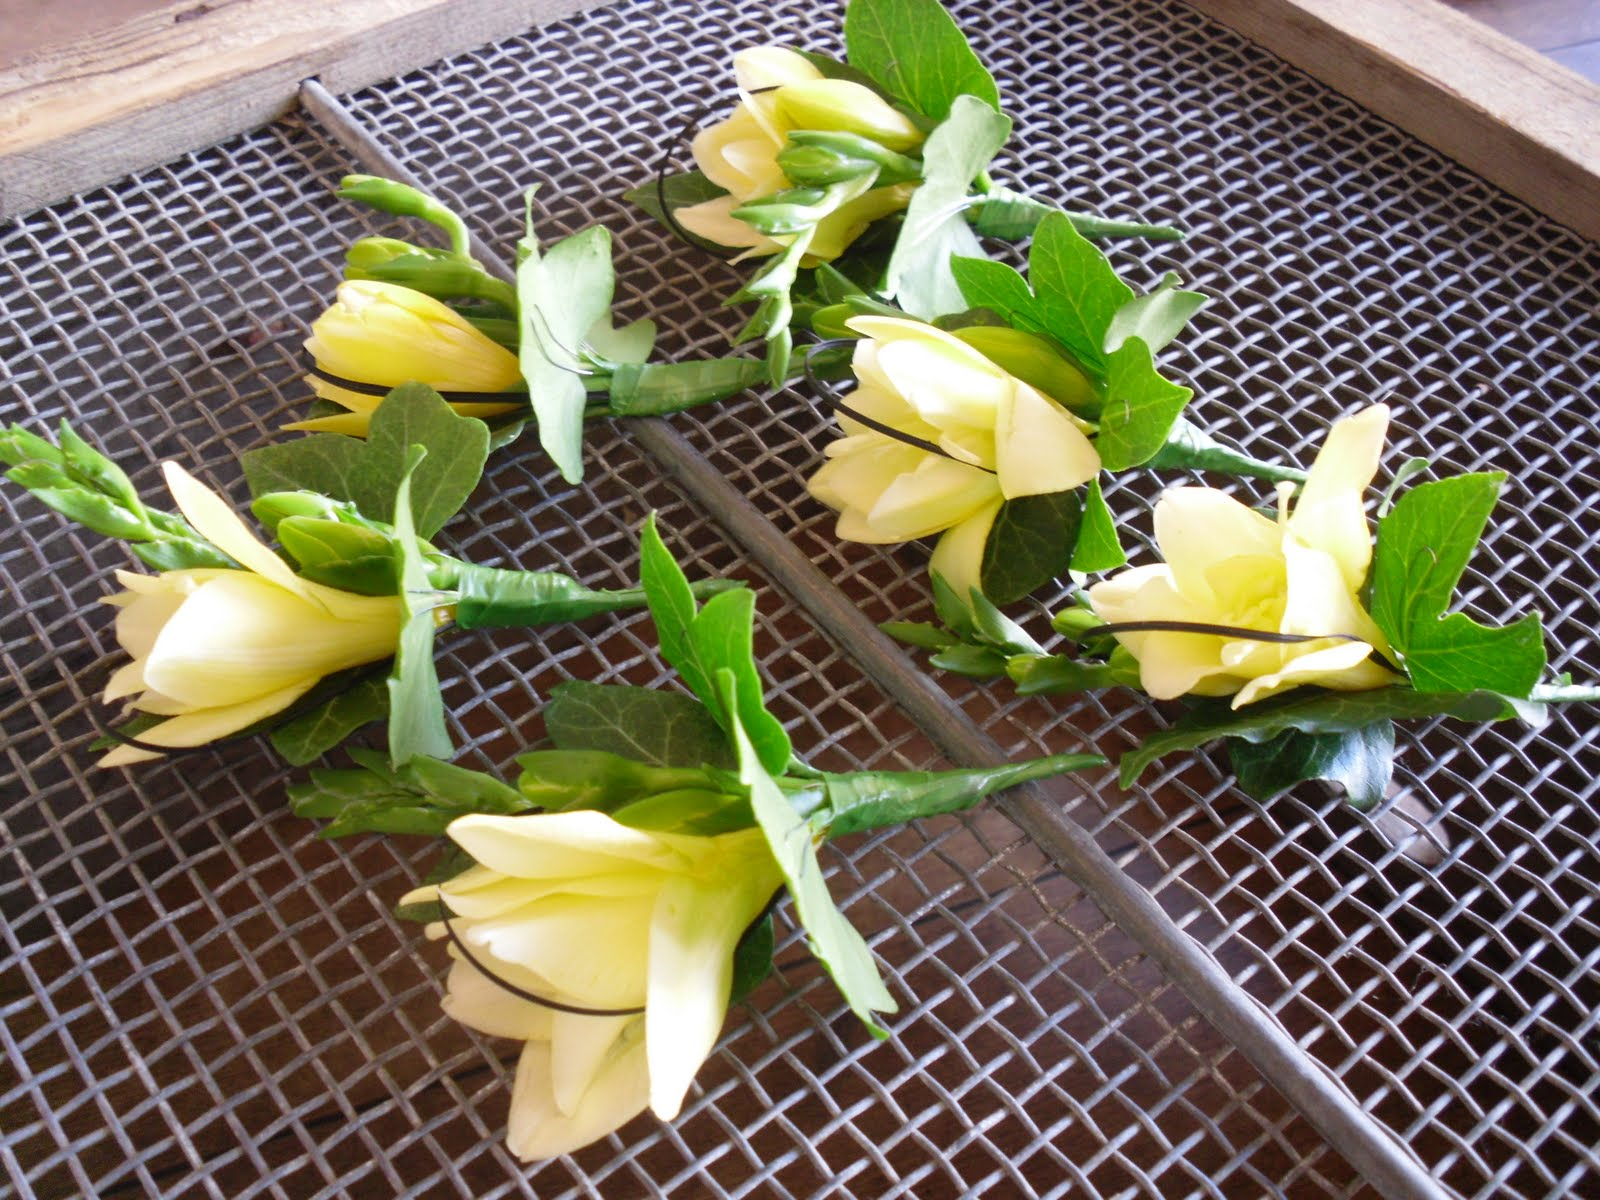 Flowers in bloom wedding of vanessa raynor 28th august the male guests wore a buttonhole of lemon freesia with black bear grass loops ivy leaves izmirmasajfo